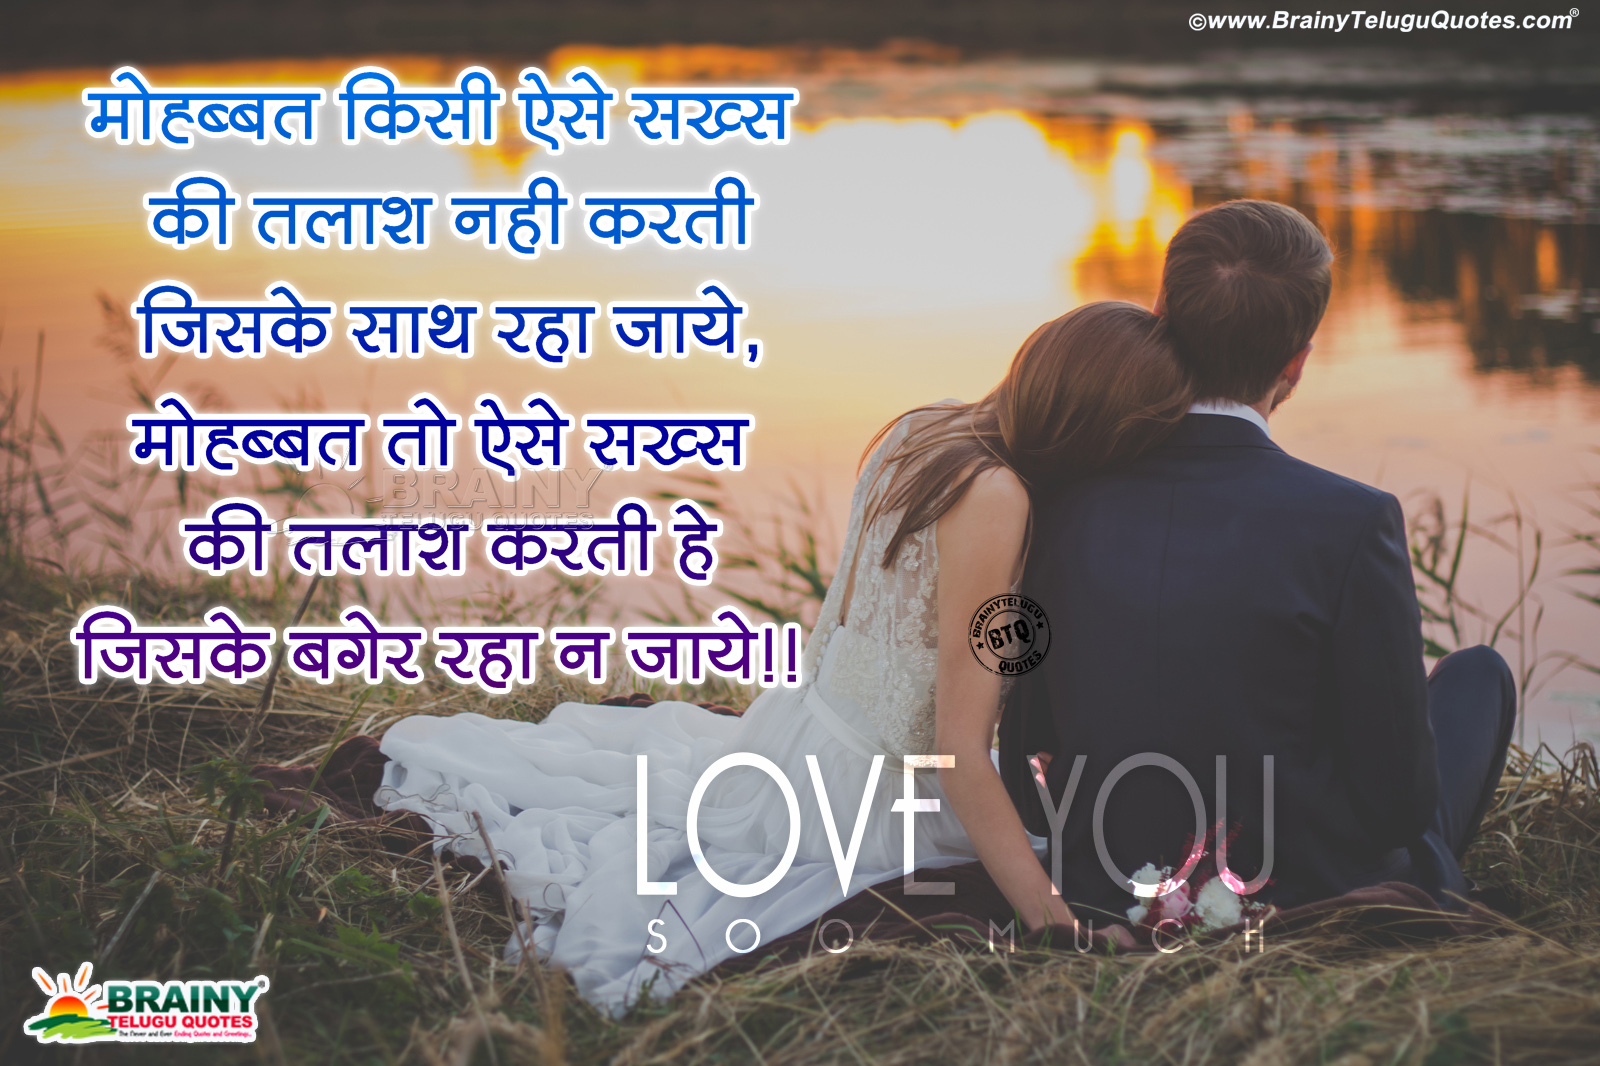 True Love Thoughts In Hindi With Heart Touching Love Pyar Shayari Quotes With Love Hd Wallpapers Brainyteluguquotes Comtelugu Quotes English Quotes Hindi Quotes Tamil Quotes Greetings